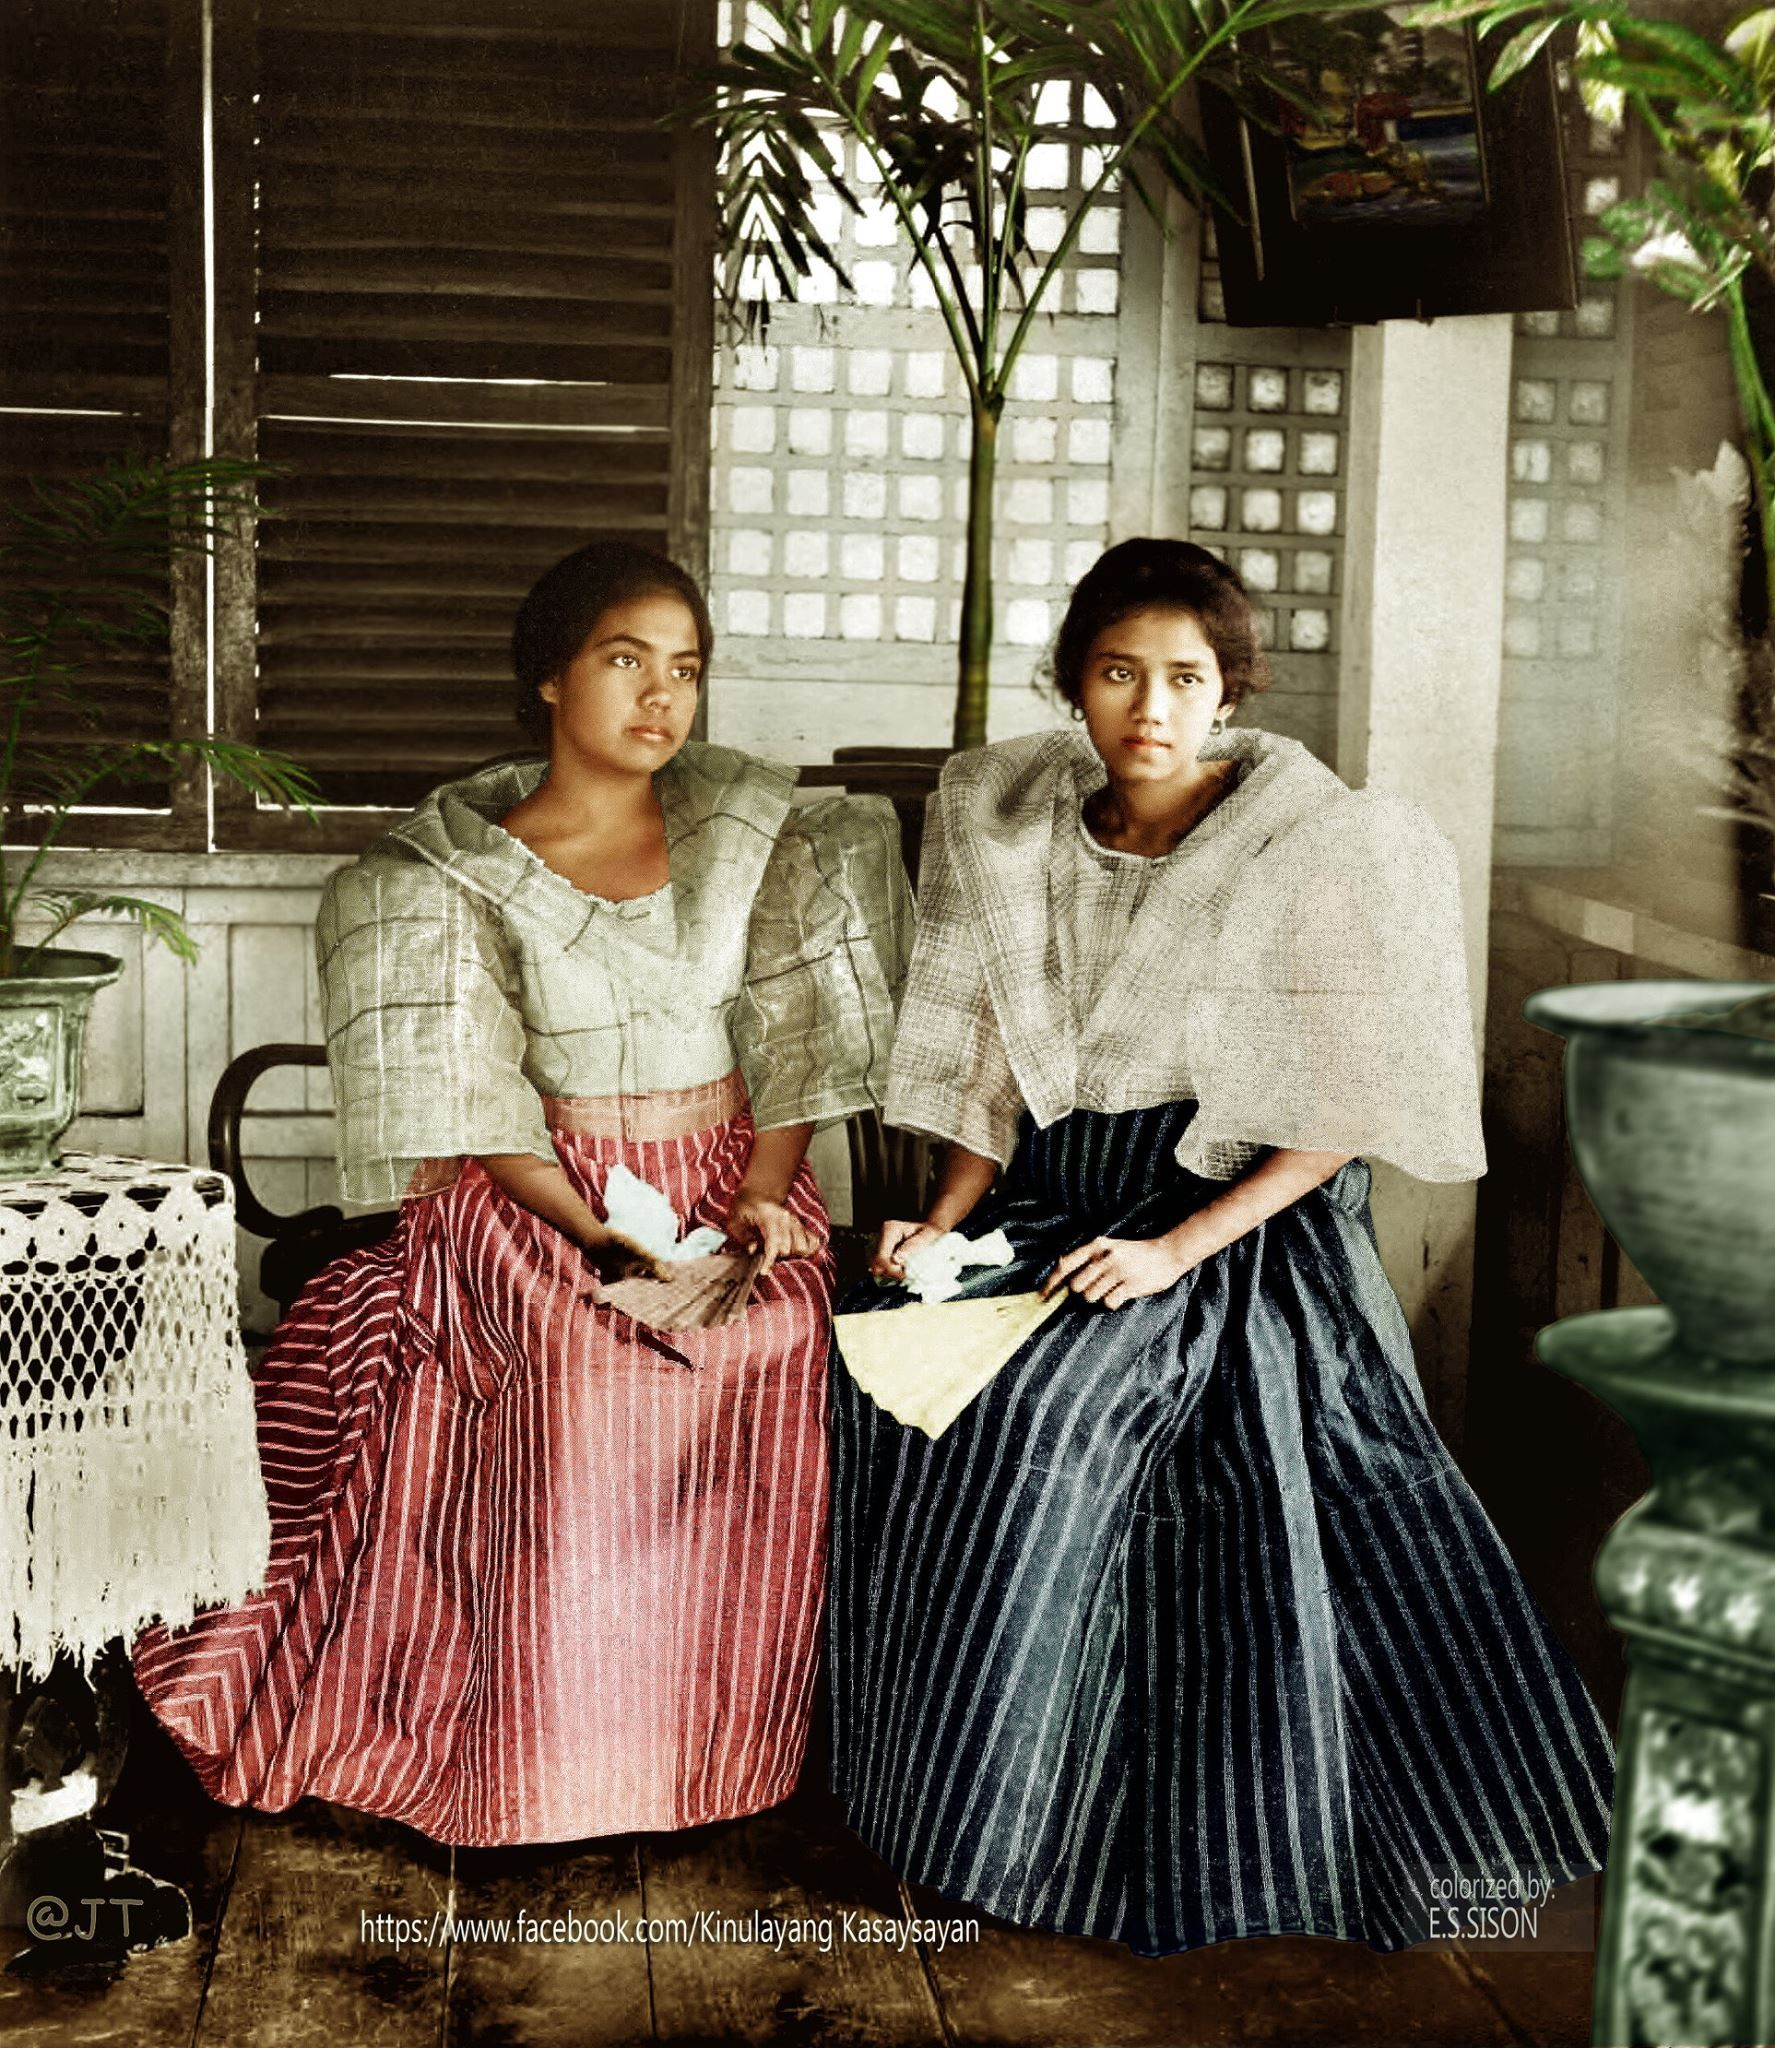 guy adds color to black and white photos from Philippine history